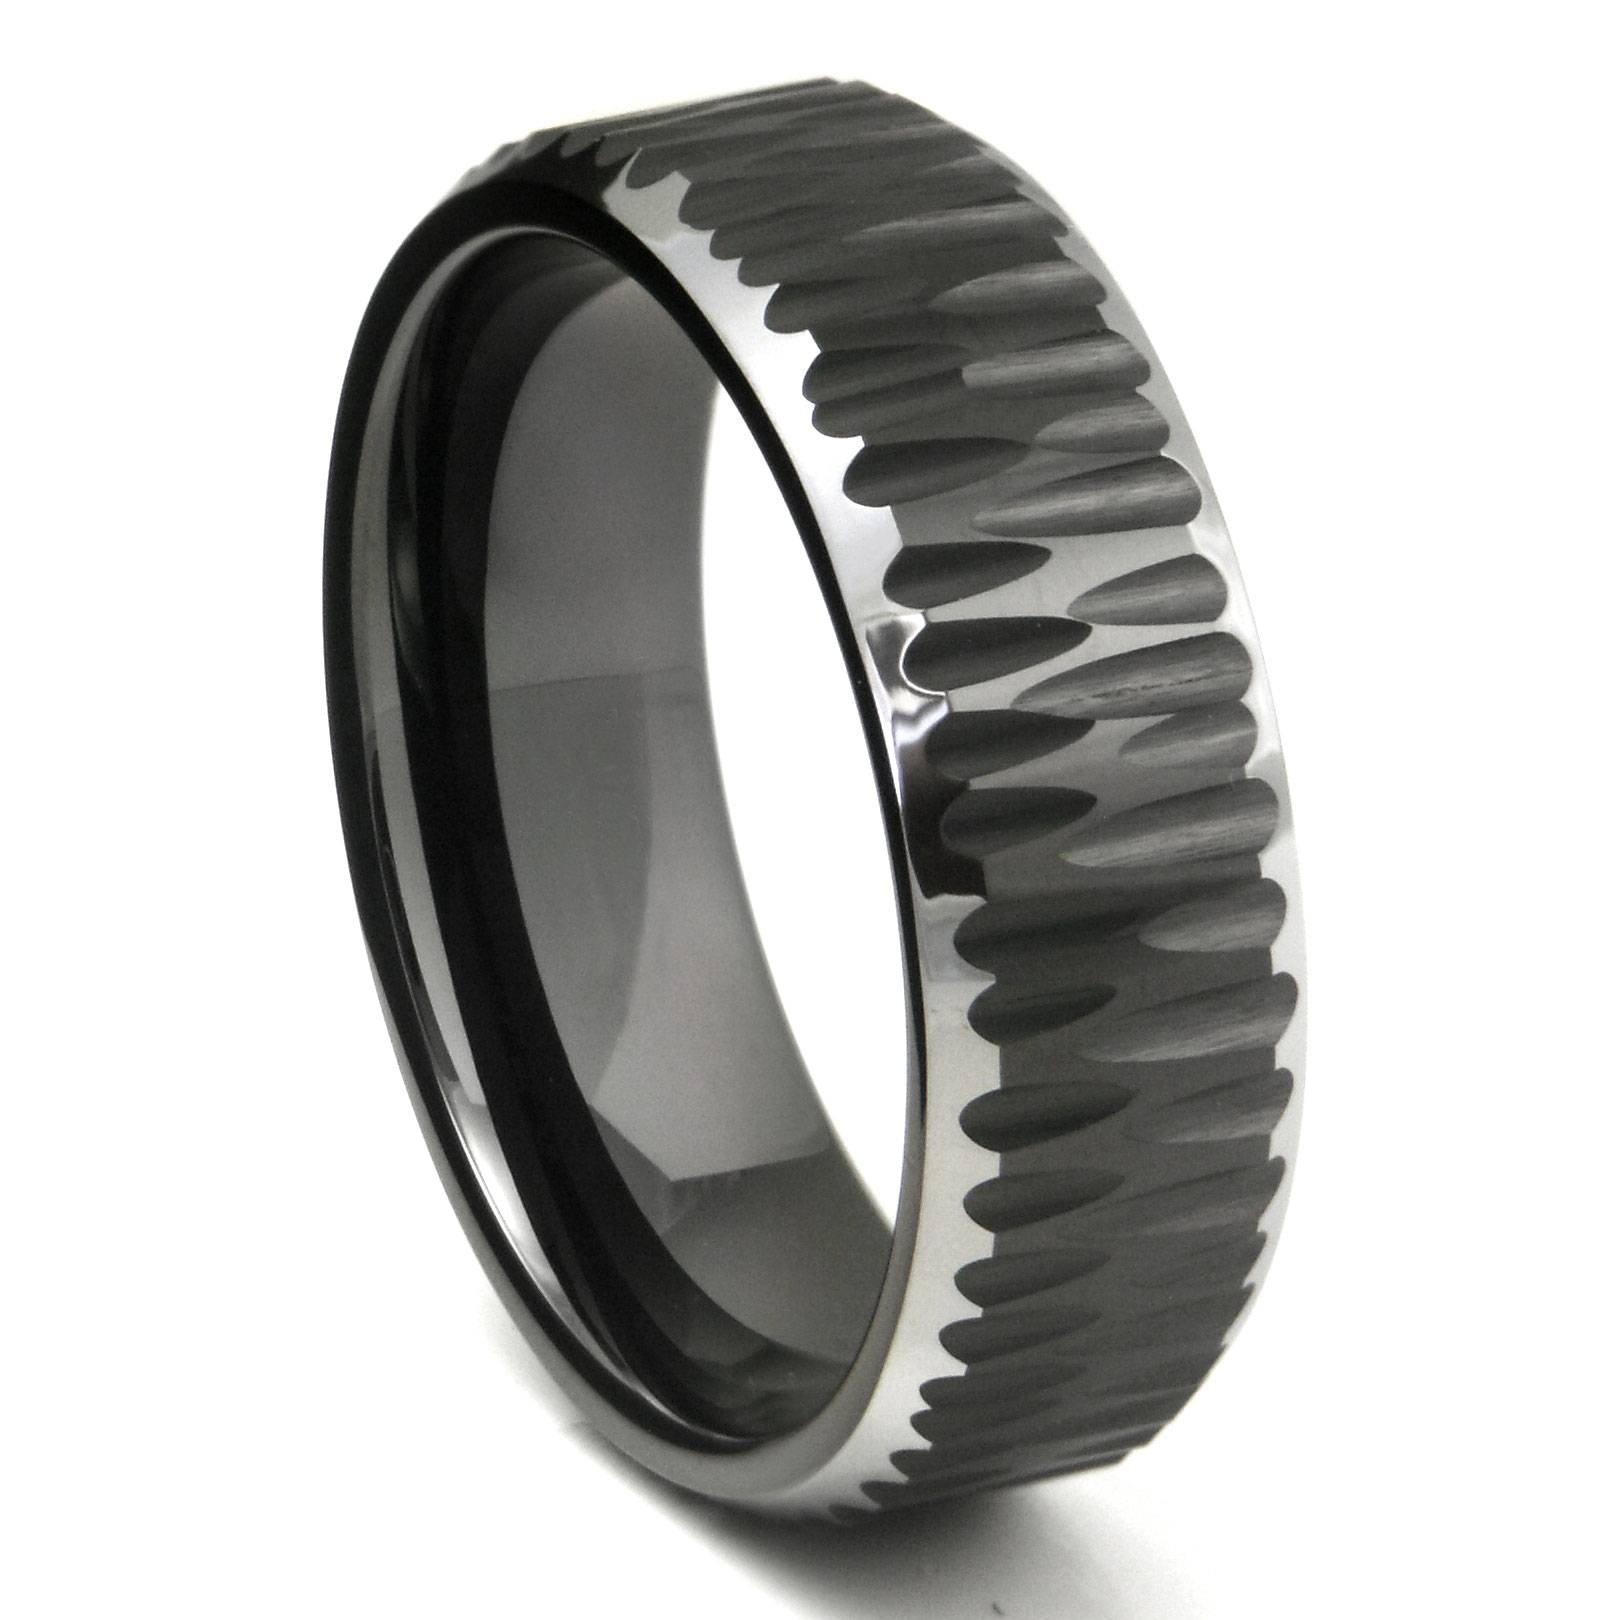 Black Tungsten Carbide Hammer Finish Beveled Wedding Band Ring Intended For Newest Mens Beveled Wedding Bands (Gallery 10 of 15)